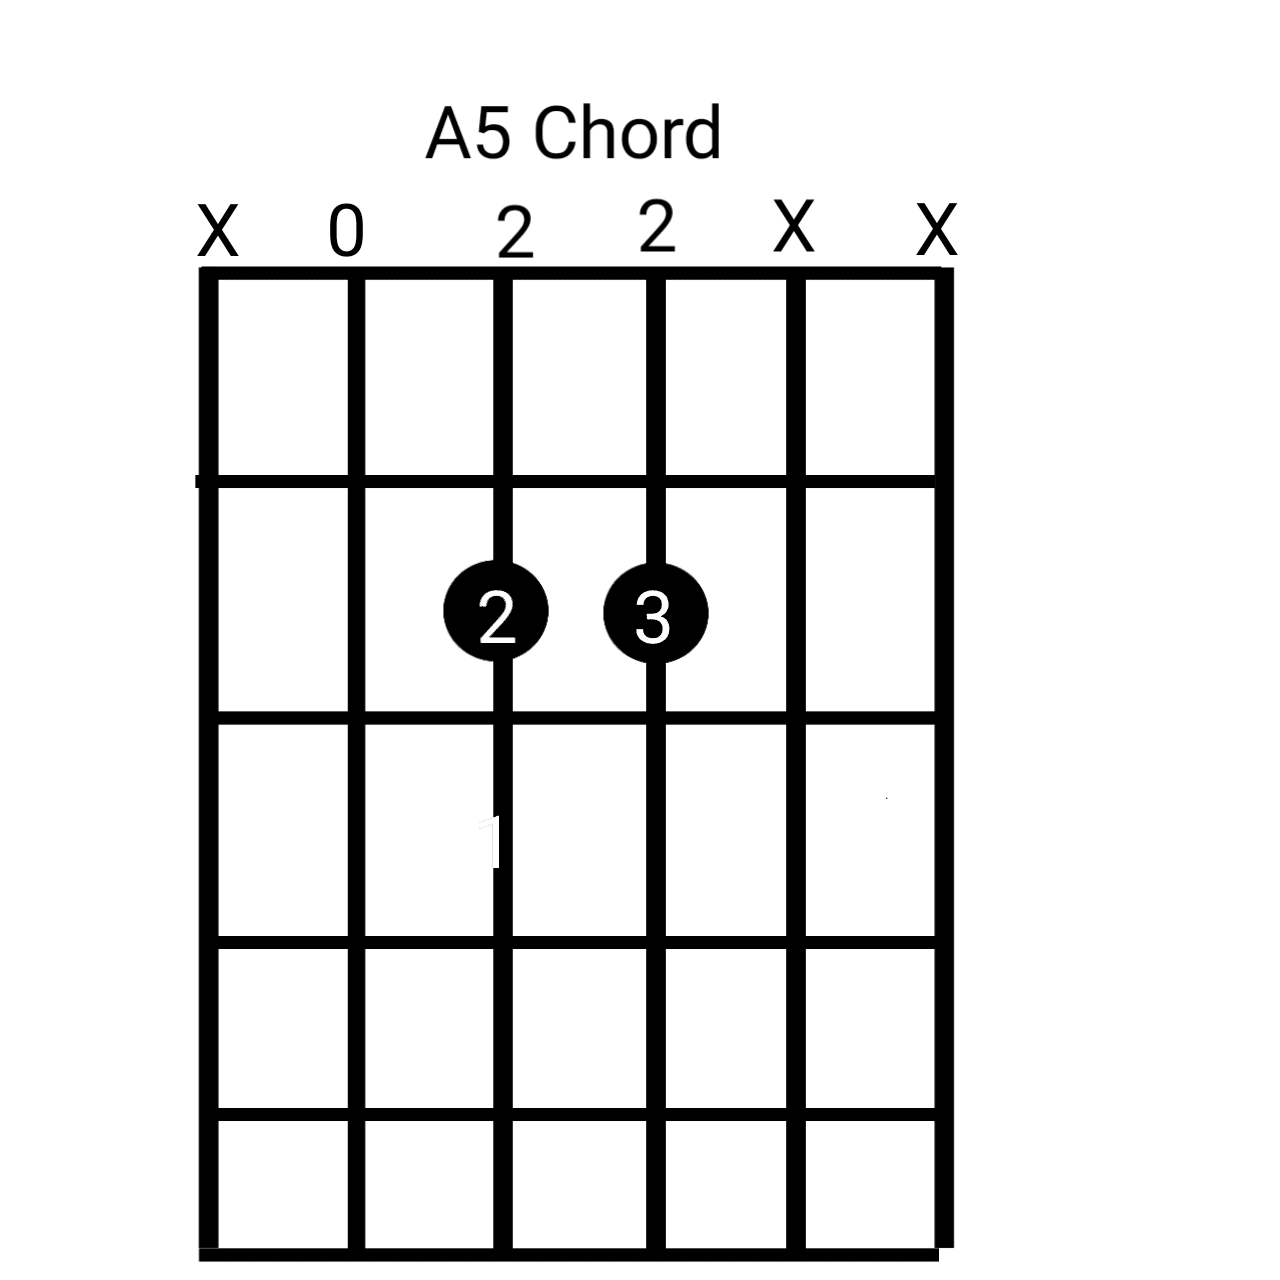 A5 Chord open position